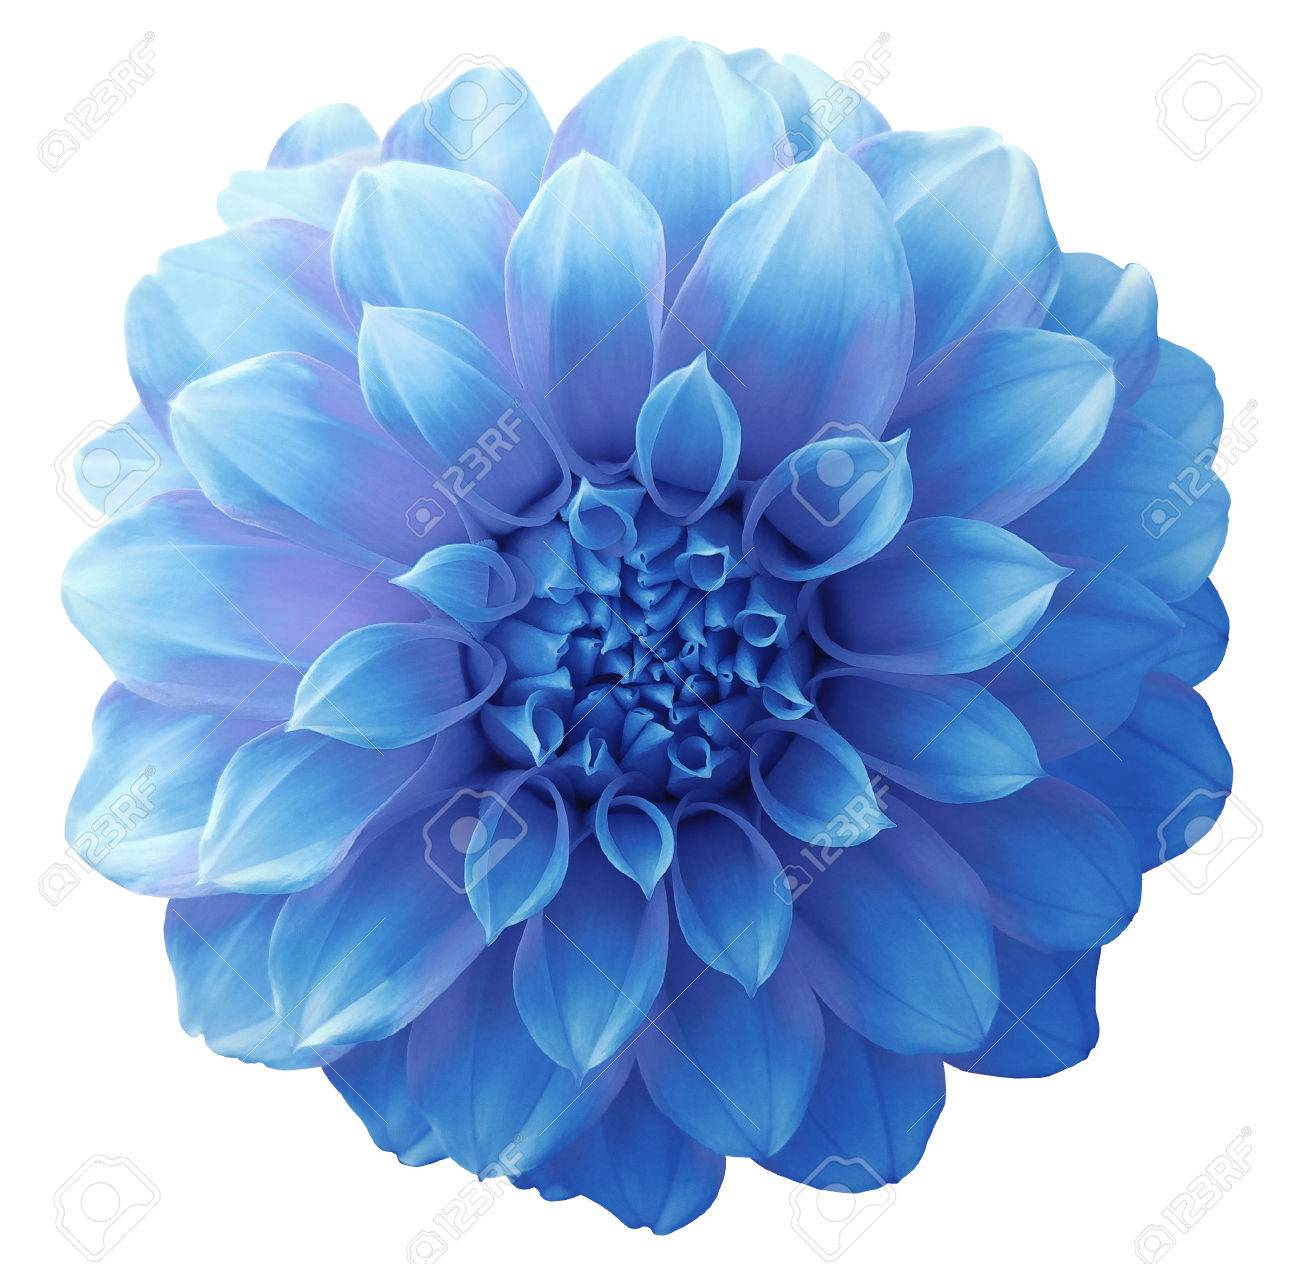 Dahlia light blue flower variegated flower white background dahlia light blue flower variegated flower white background isolated with clipping path closeup mightylinksfo